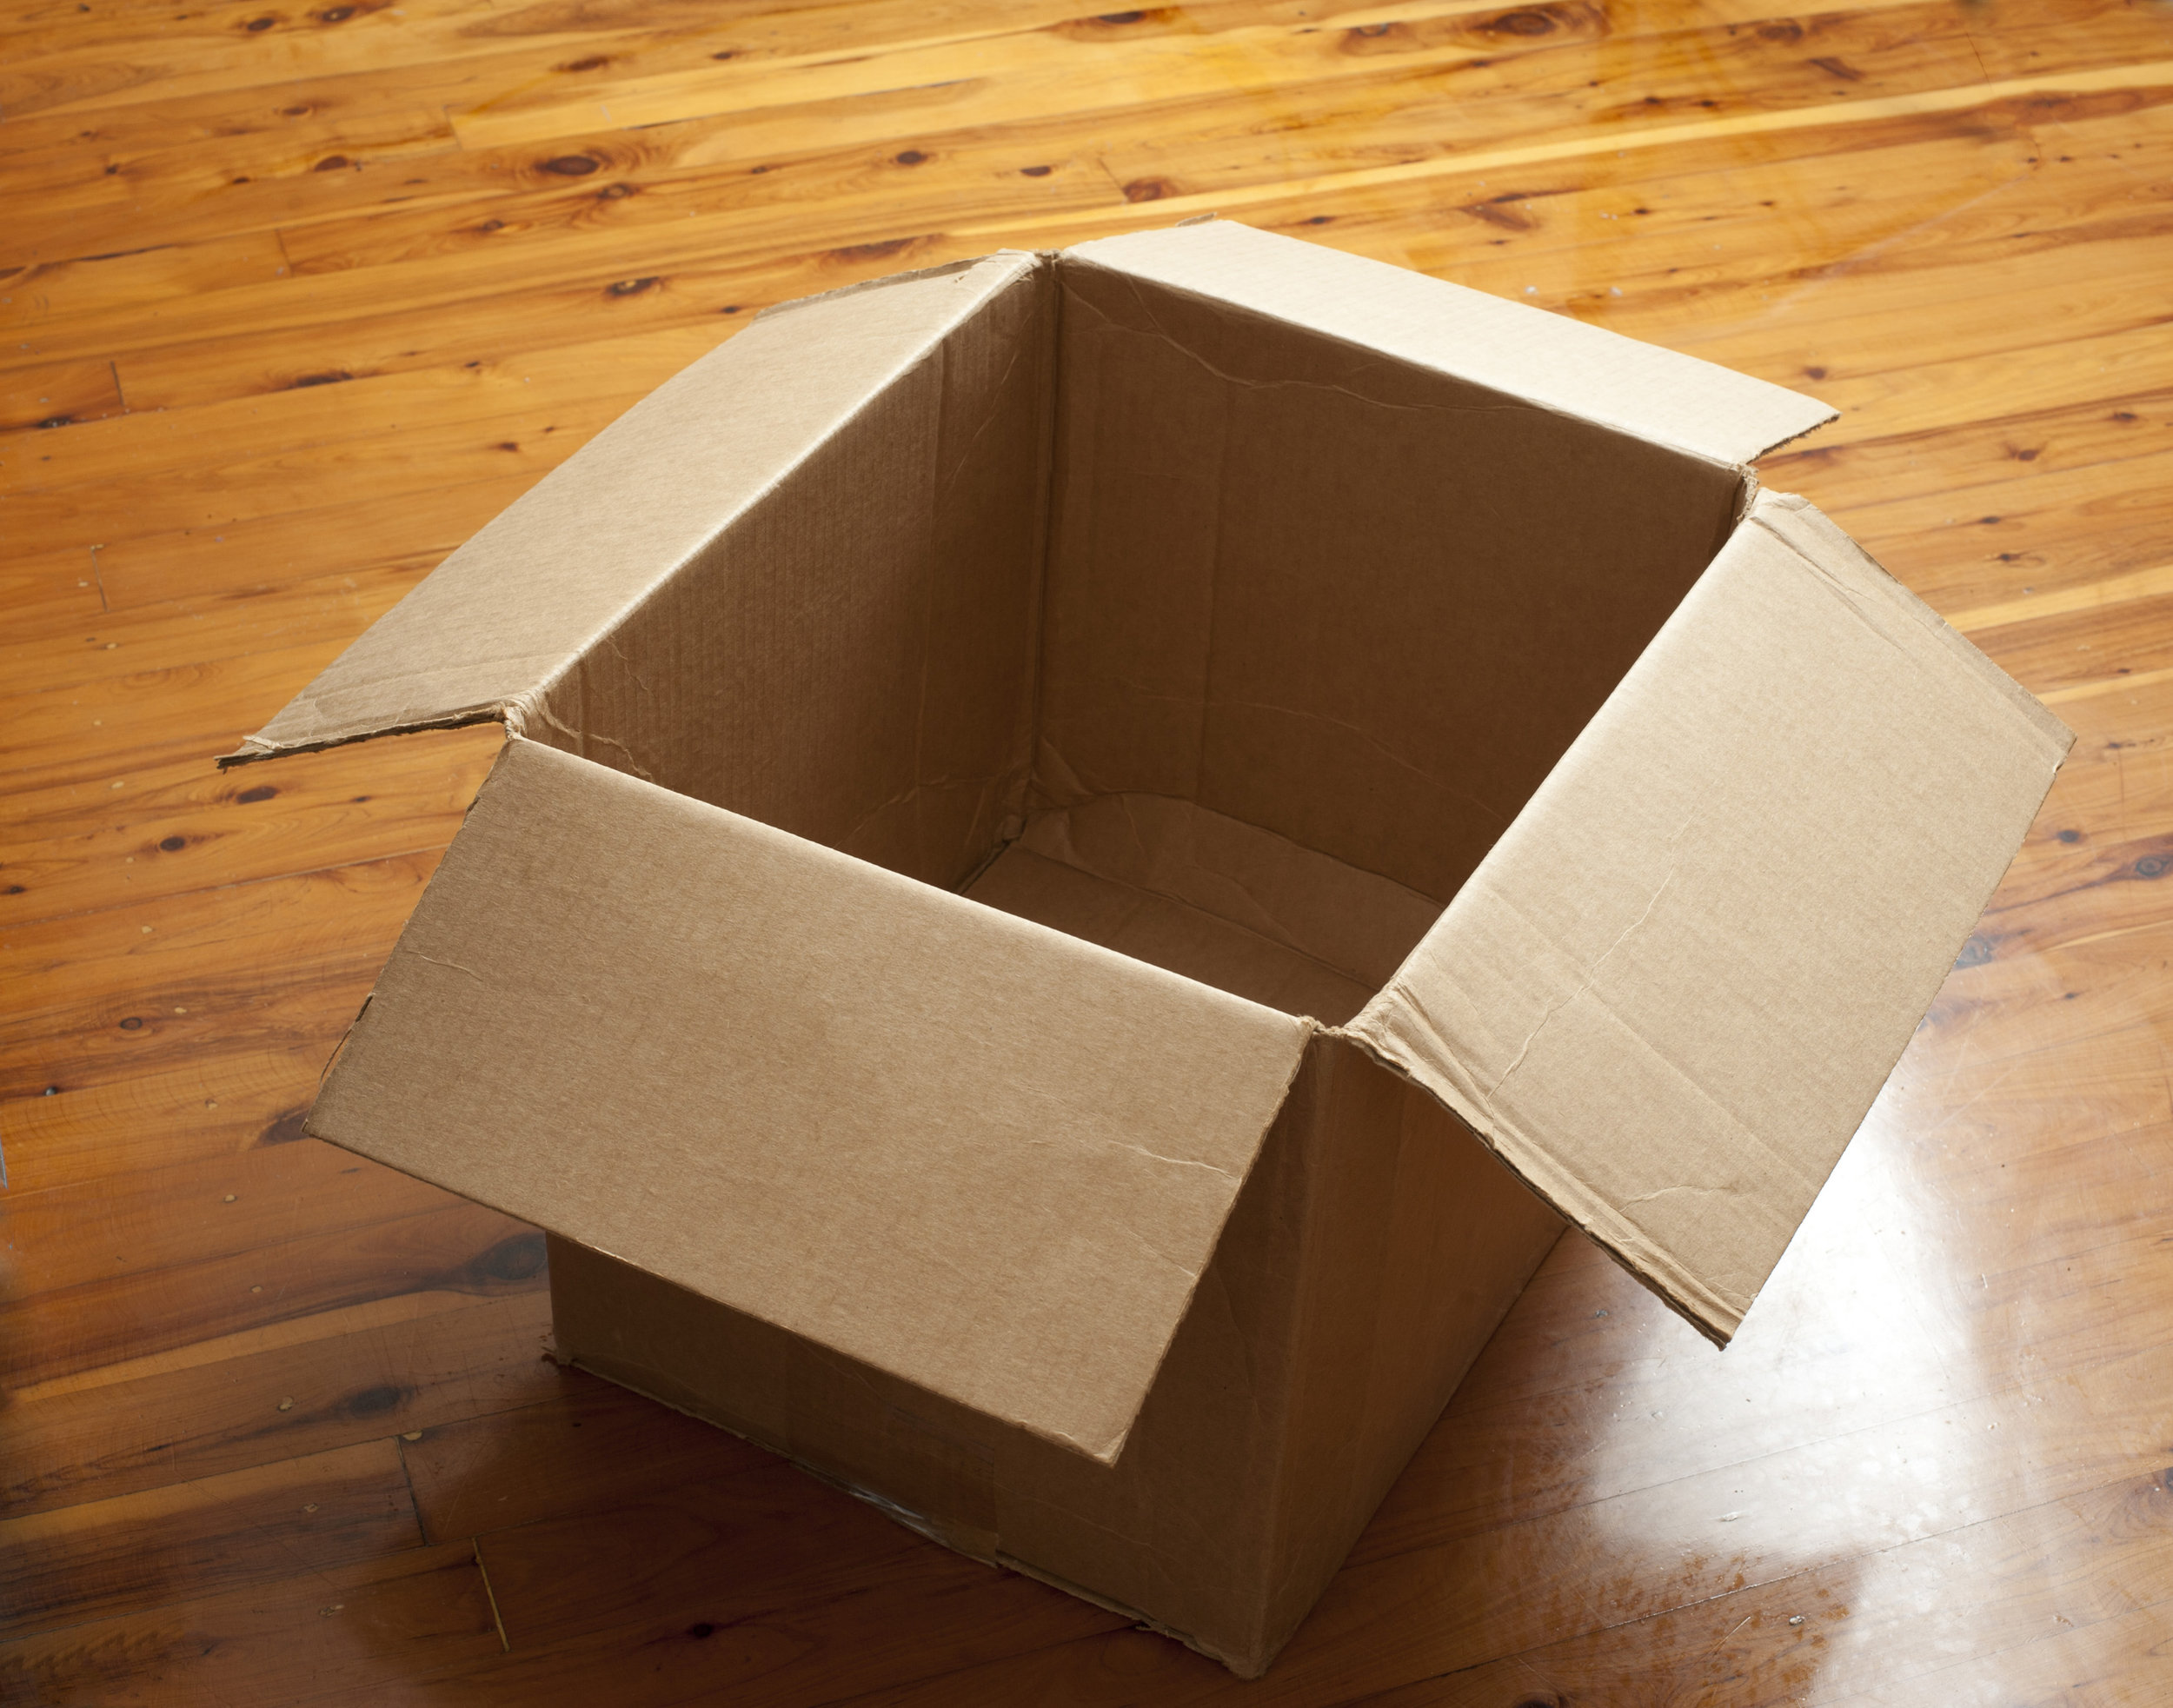 hidden costs of cardboard boxes